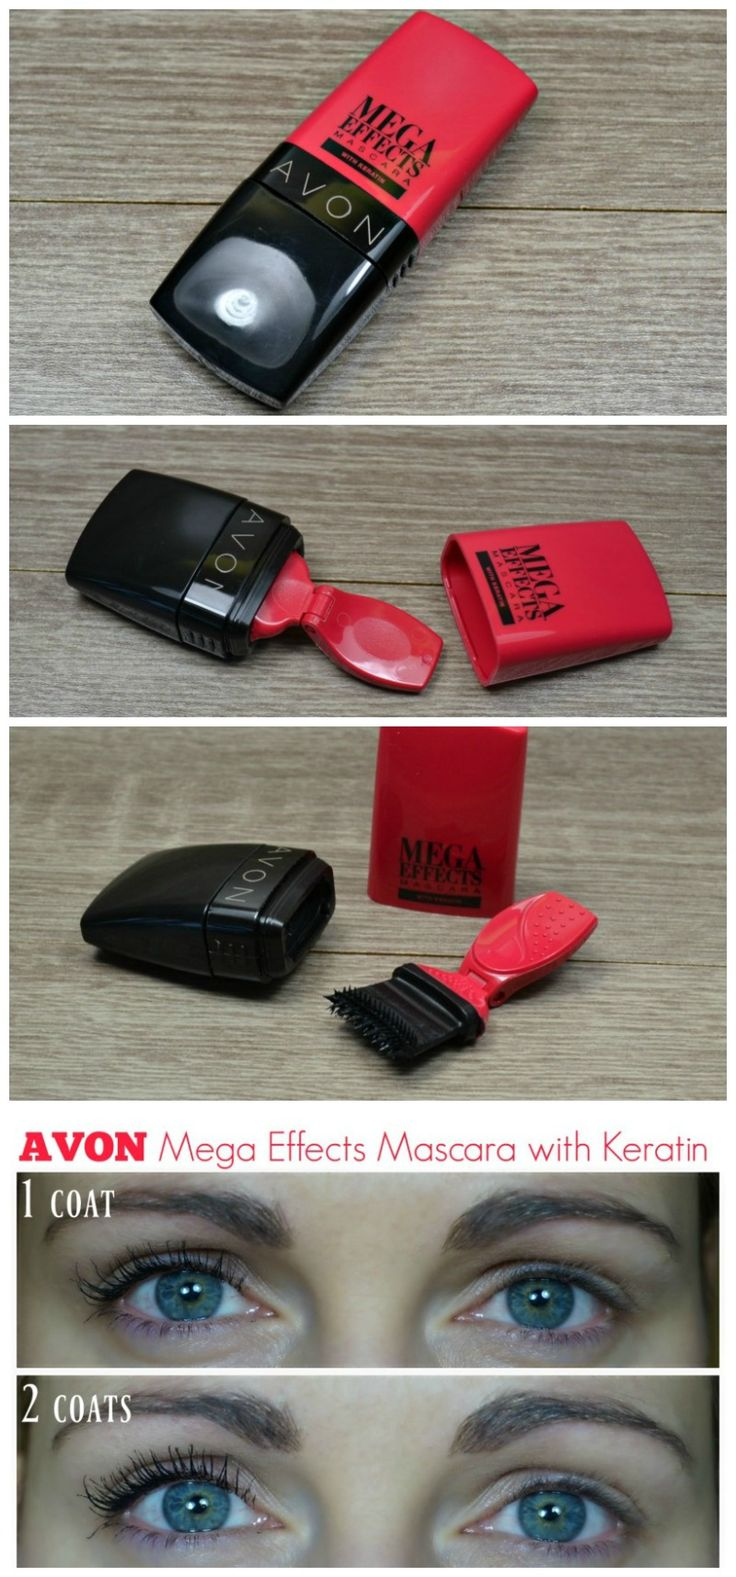 Avon Mega Effects Mascara with Keratin review adn swatches.  via @beautybymissl